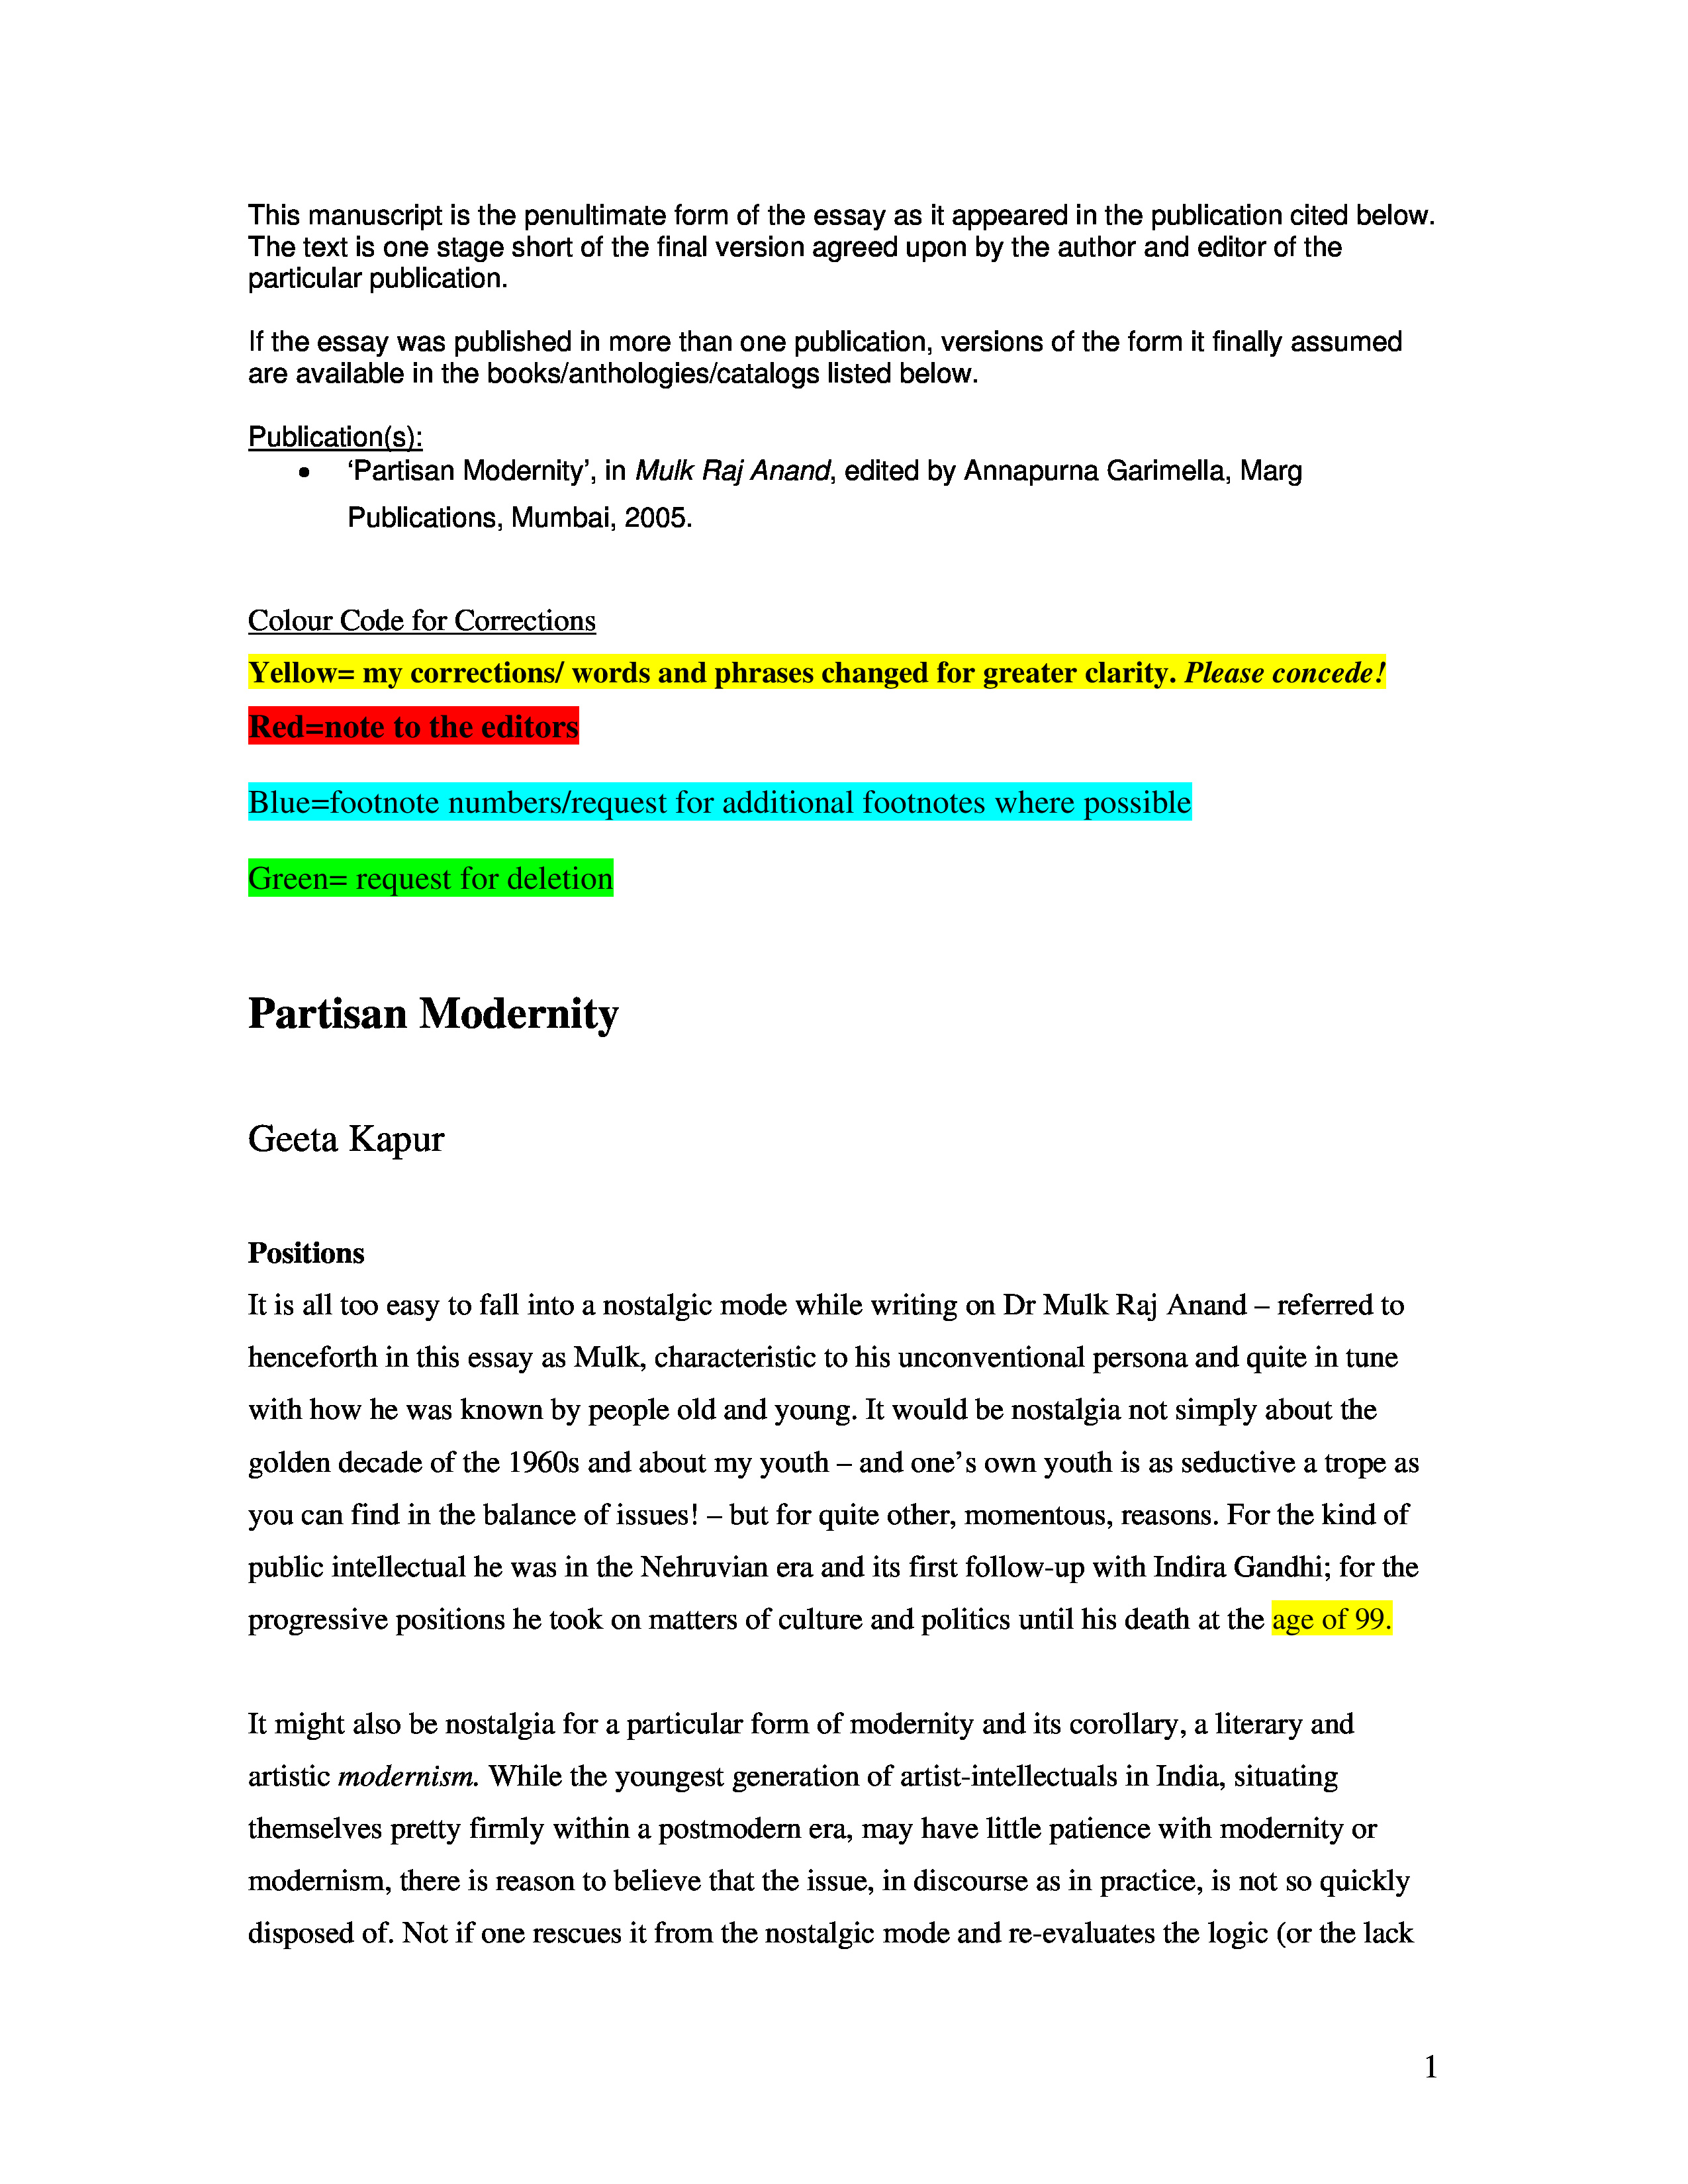 How To Write A Business Essay Thesis On Mulk Raj Anand Mulk Raj Anand Untouchable Essay Help Best Self  Discipline Essay David High School Vs College Essay Compare And Contrast also Writing High School Essays Thesis On Mulk Raj Anand Custom Paper Sample   Words  Proposal Argument Essay Examples